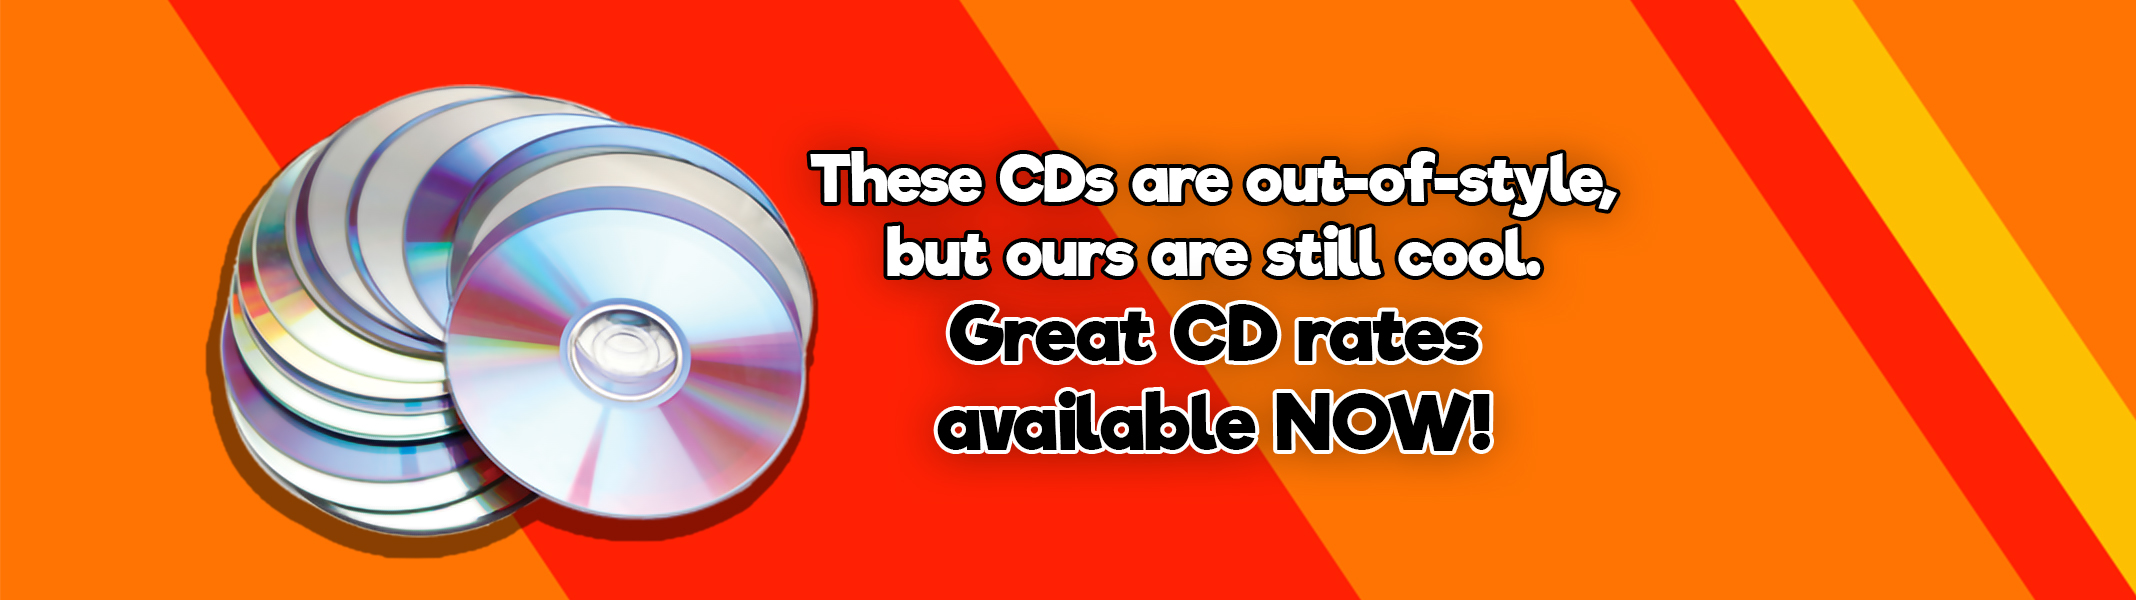 CD Special